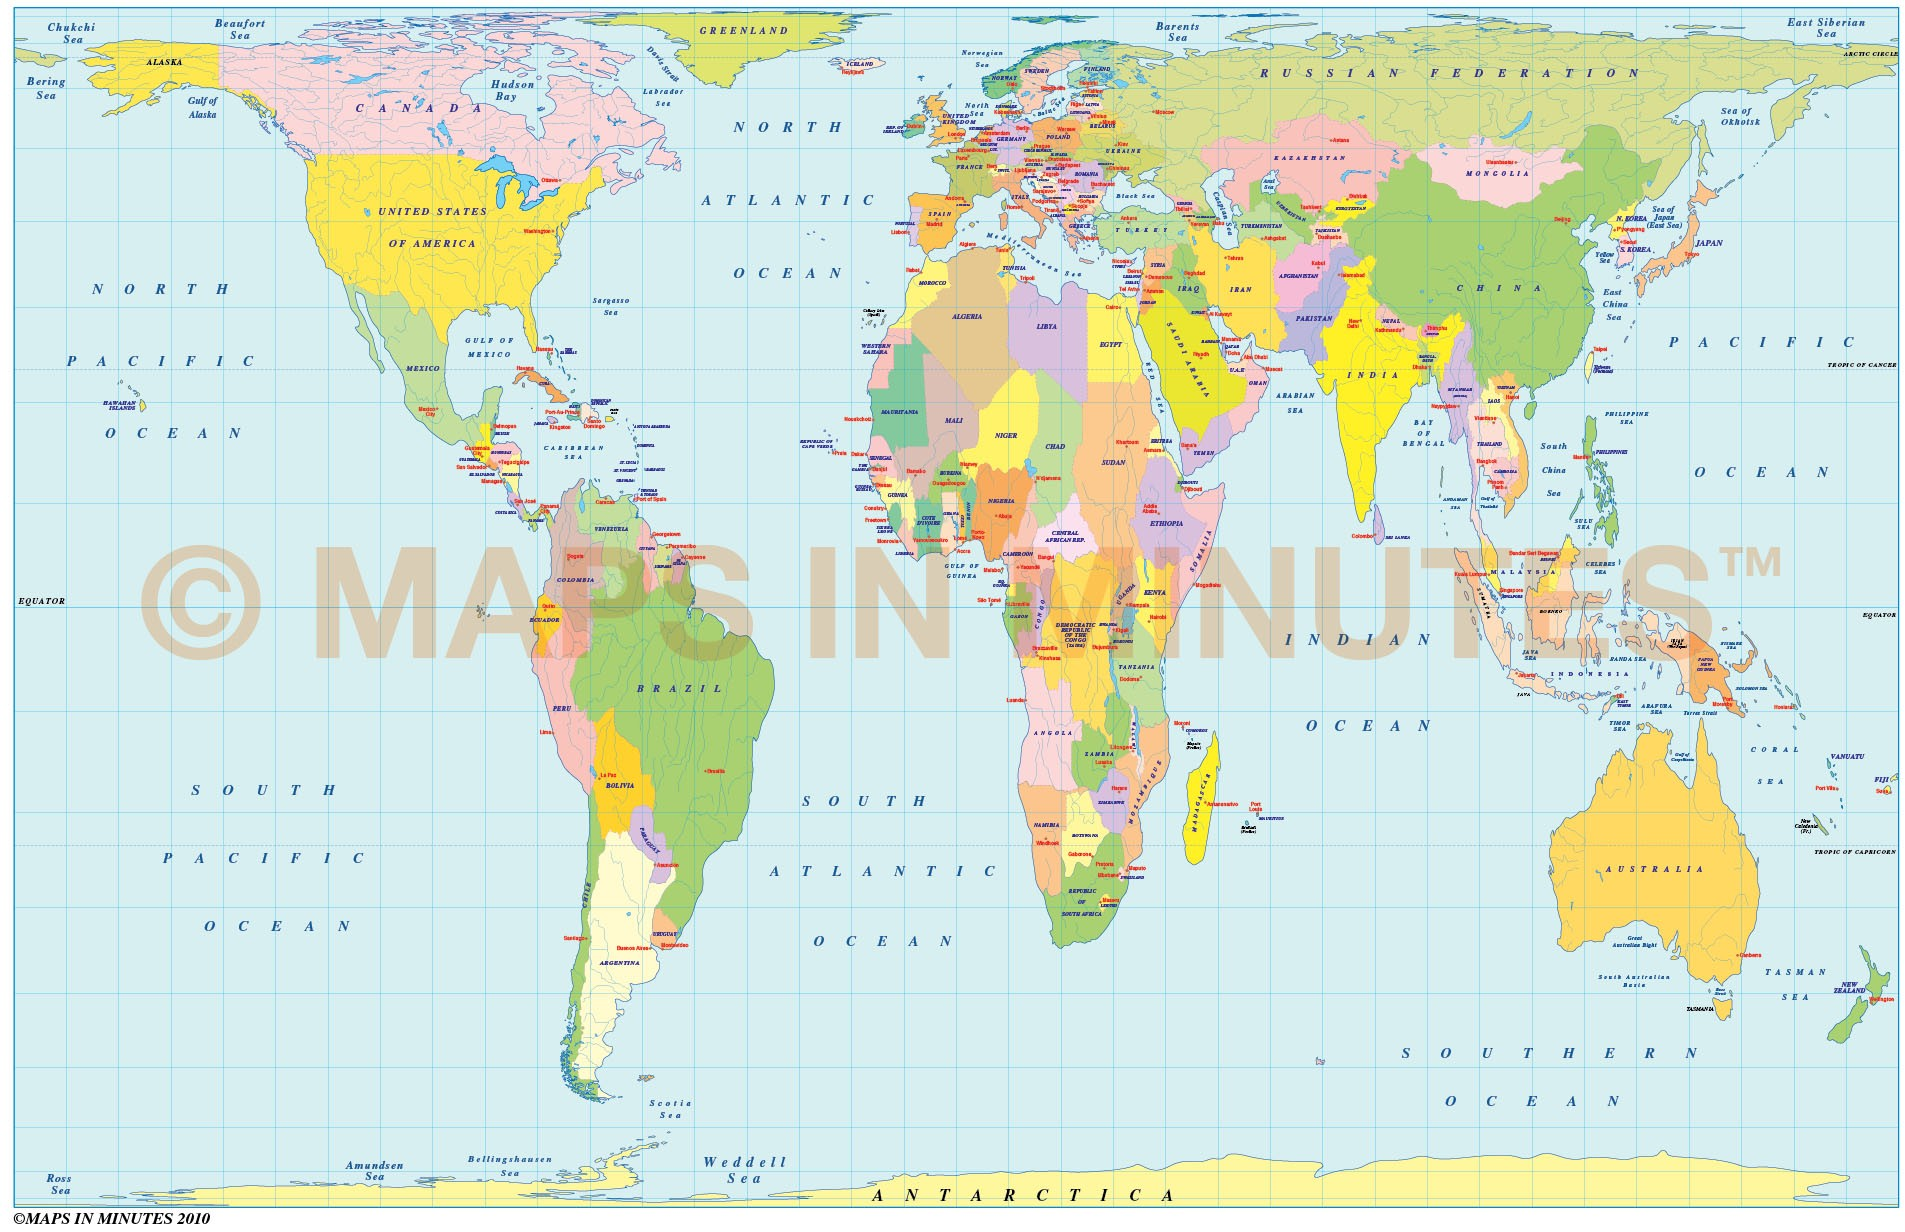 Digital Vector Map Royalty Free Gall Orthographic Projection Political World Map Small Scale Uk Centric In Illustrator Find the perfect bay area map stock illustrations from getty images. digital vector map royalty free gall